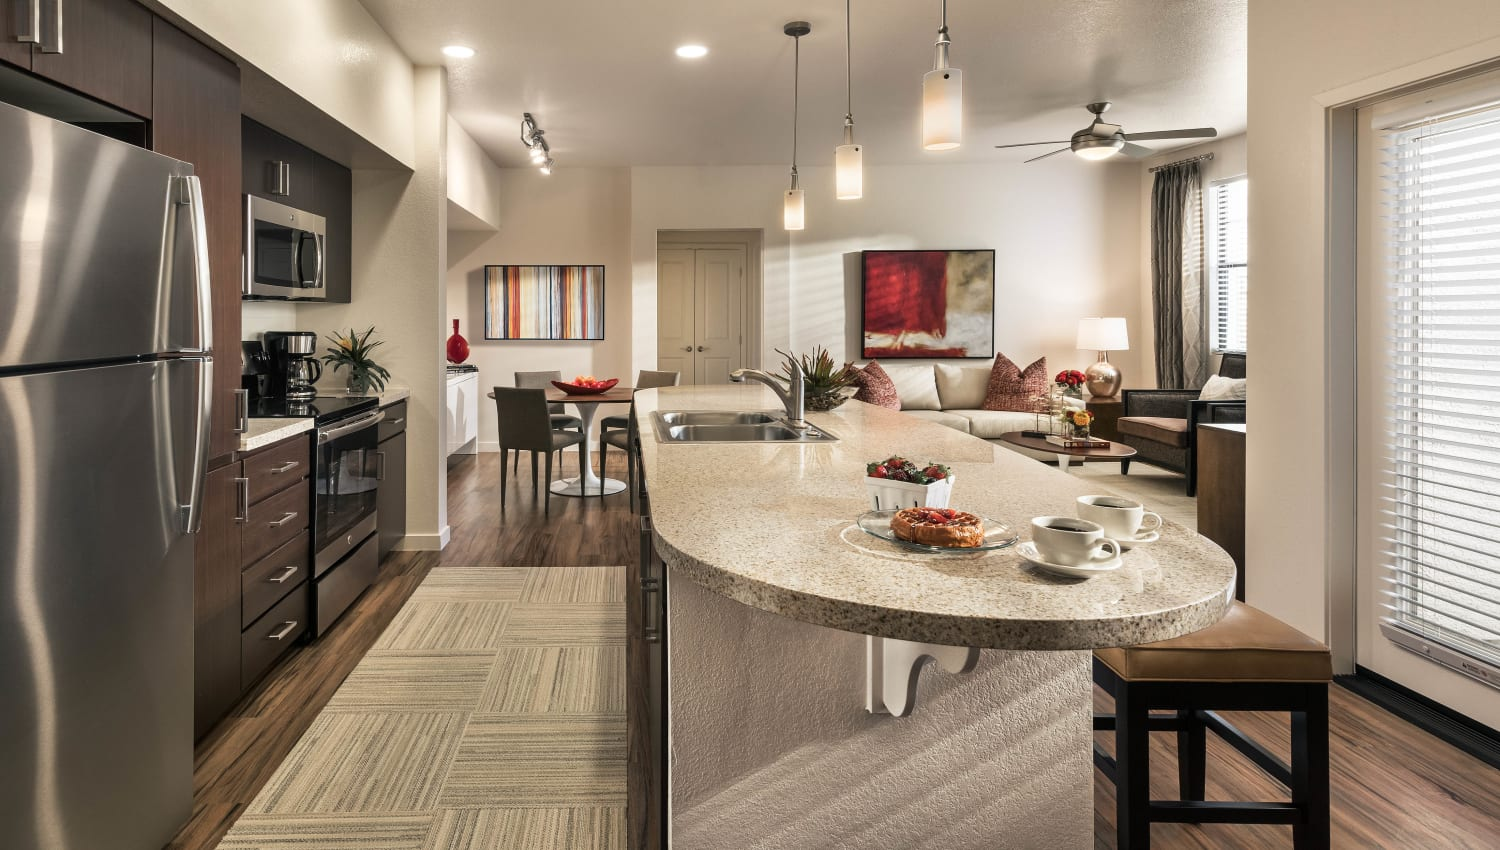 Model home's gourmet kitchen with an island and custom wood cabinetry at Vistara at SanTan Village in Gilbert, Arizona